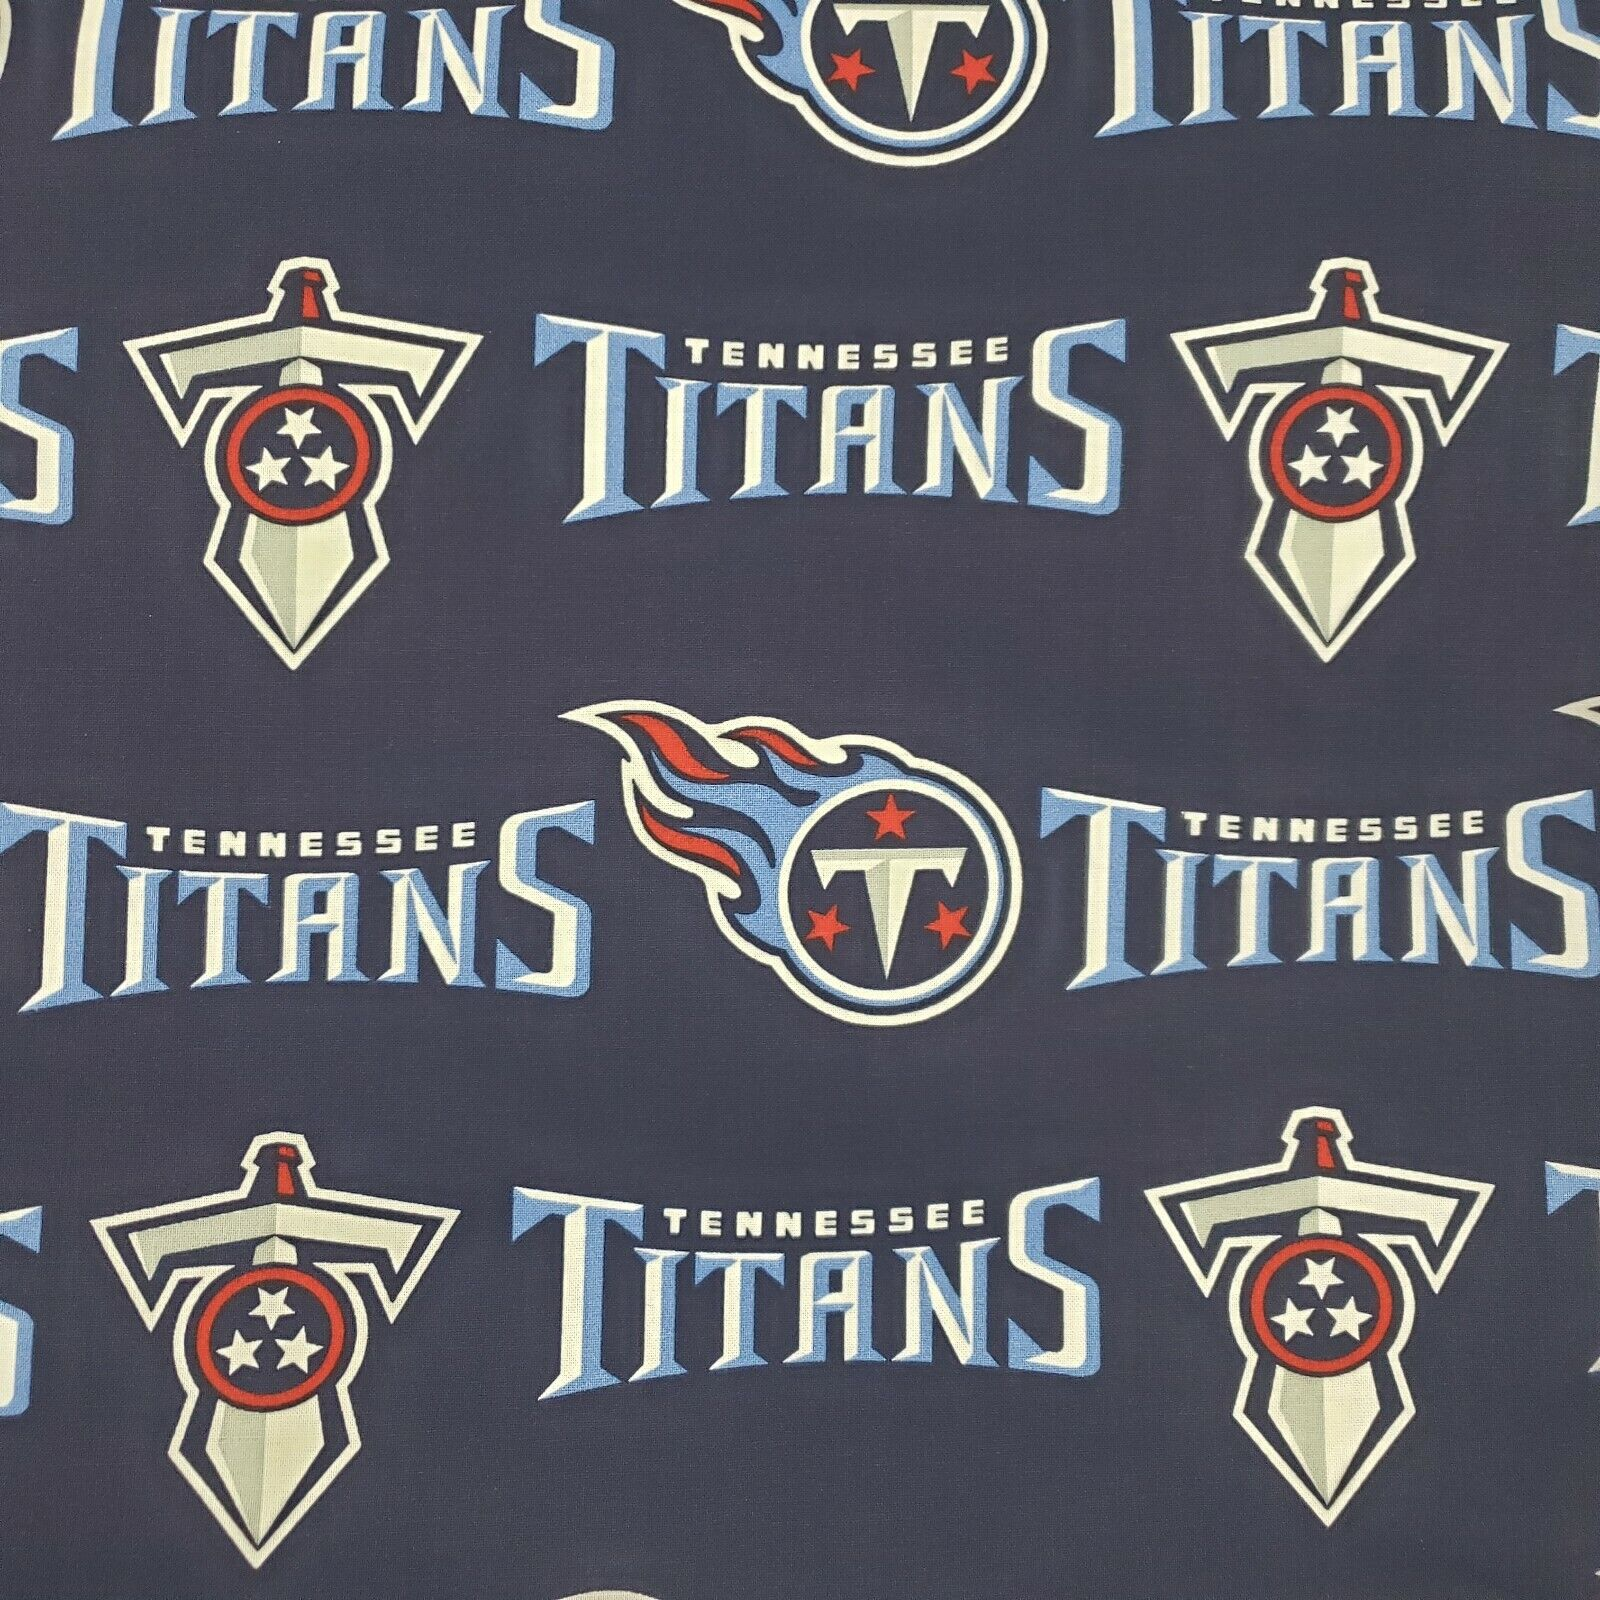 NFL TENNESSEE TITANS LOGO Cotton Fabric by the 1/2 HALF-YARD